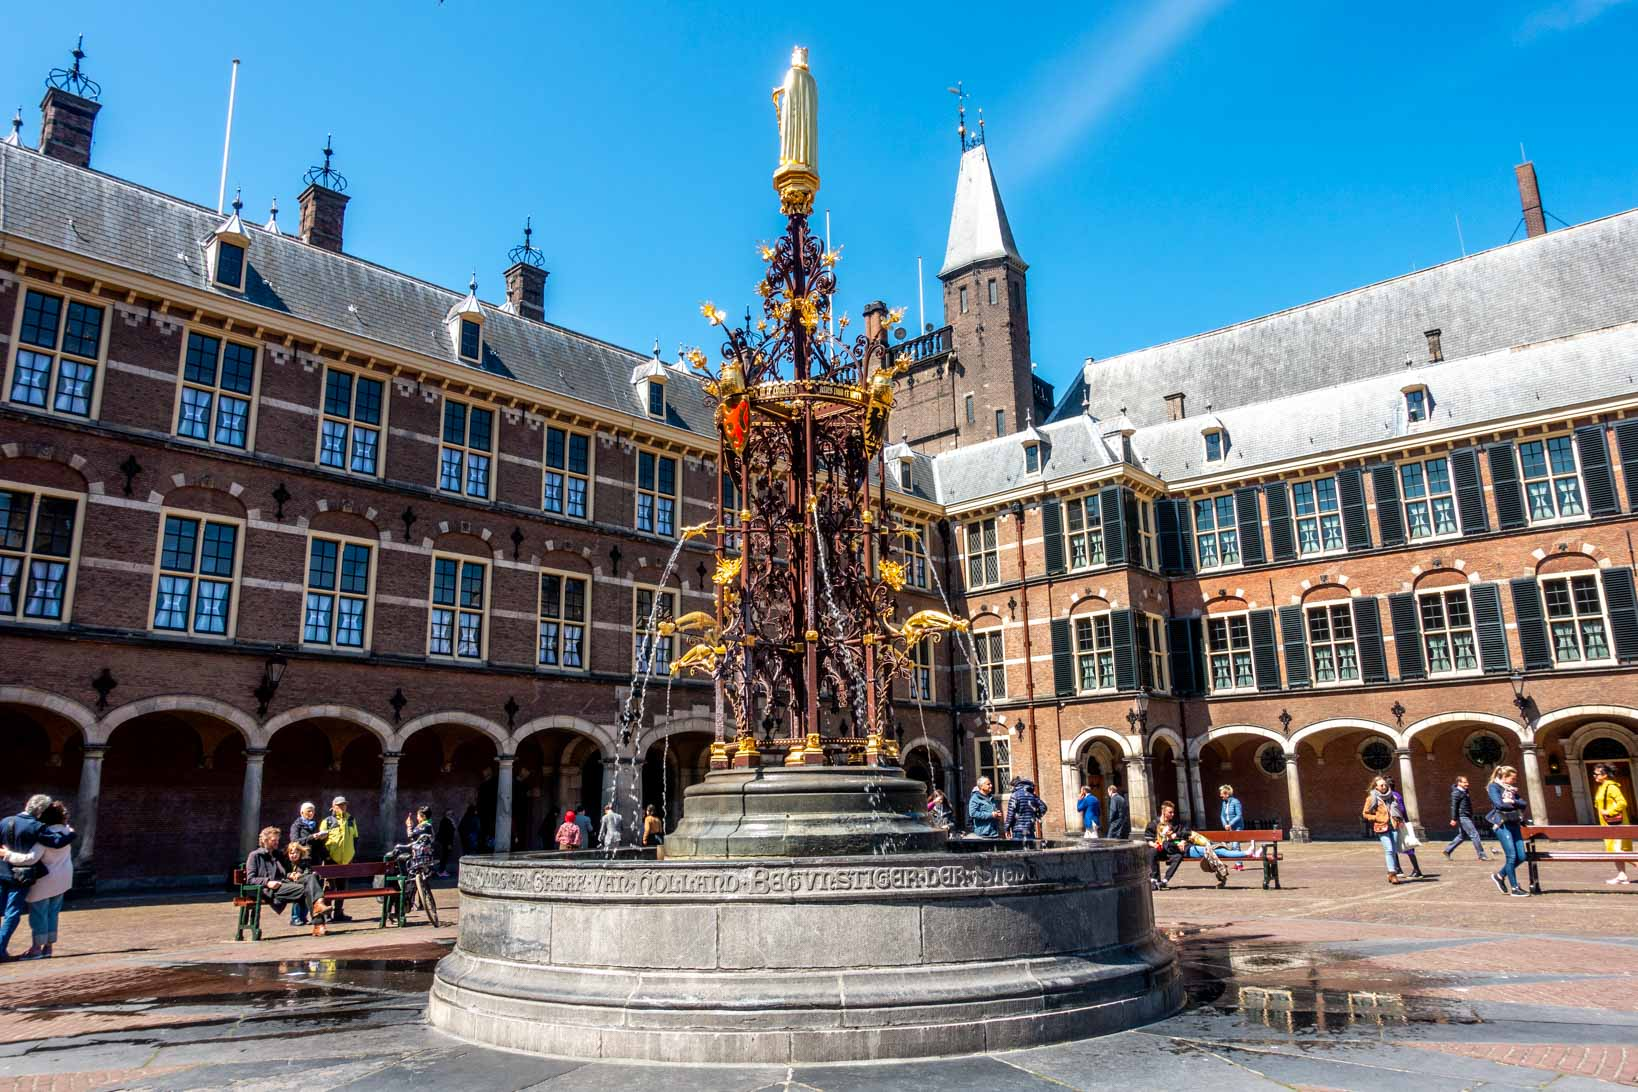 Gold ornametal fountain in a courtyard surrounded by a building